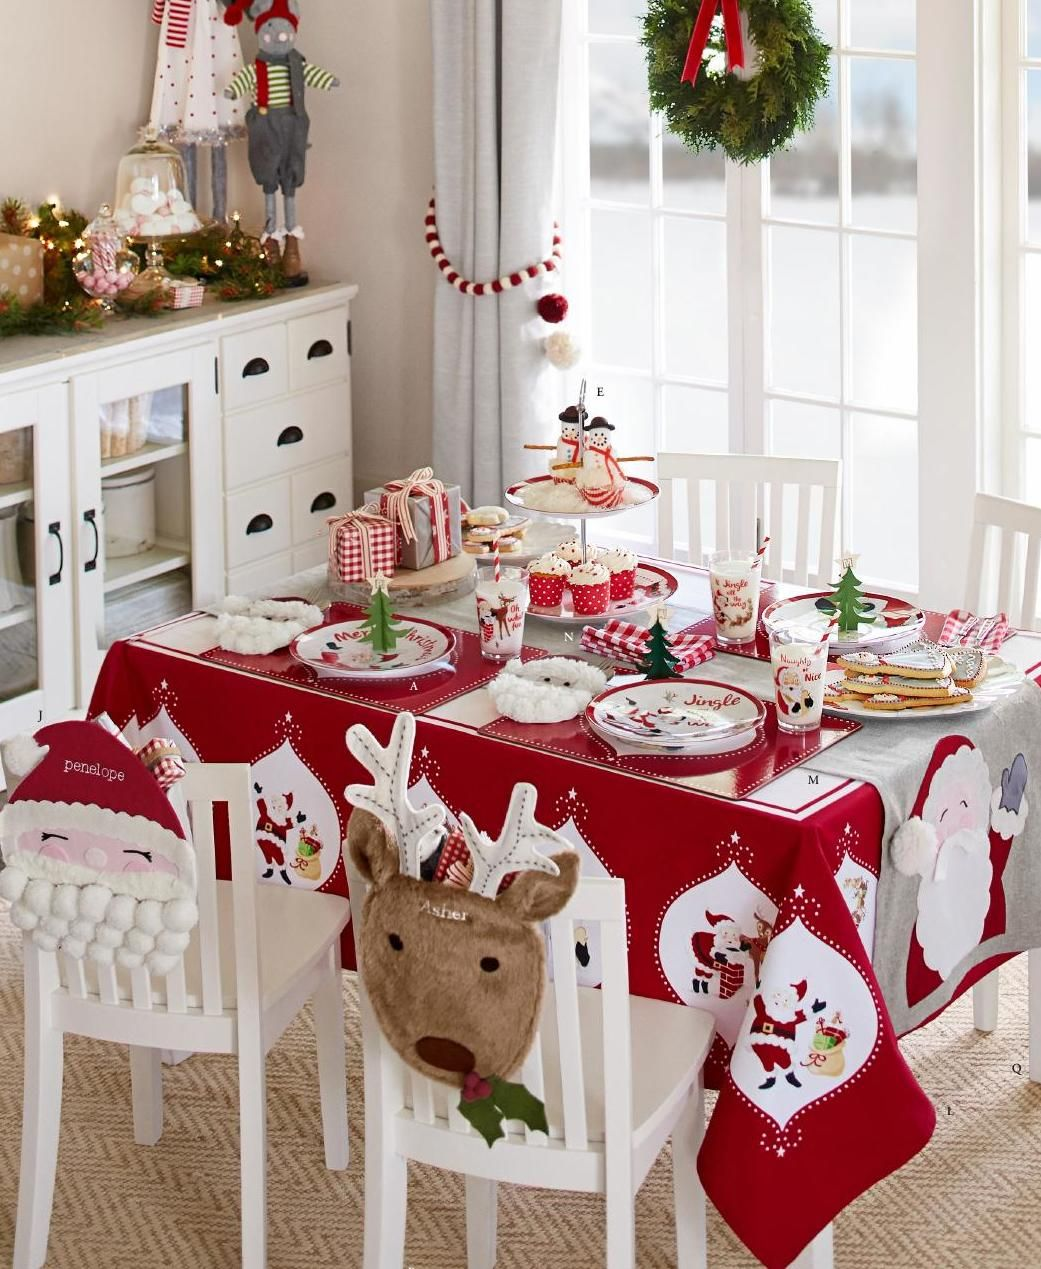 Pottery Barn Kids Christmas decorations for kids